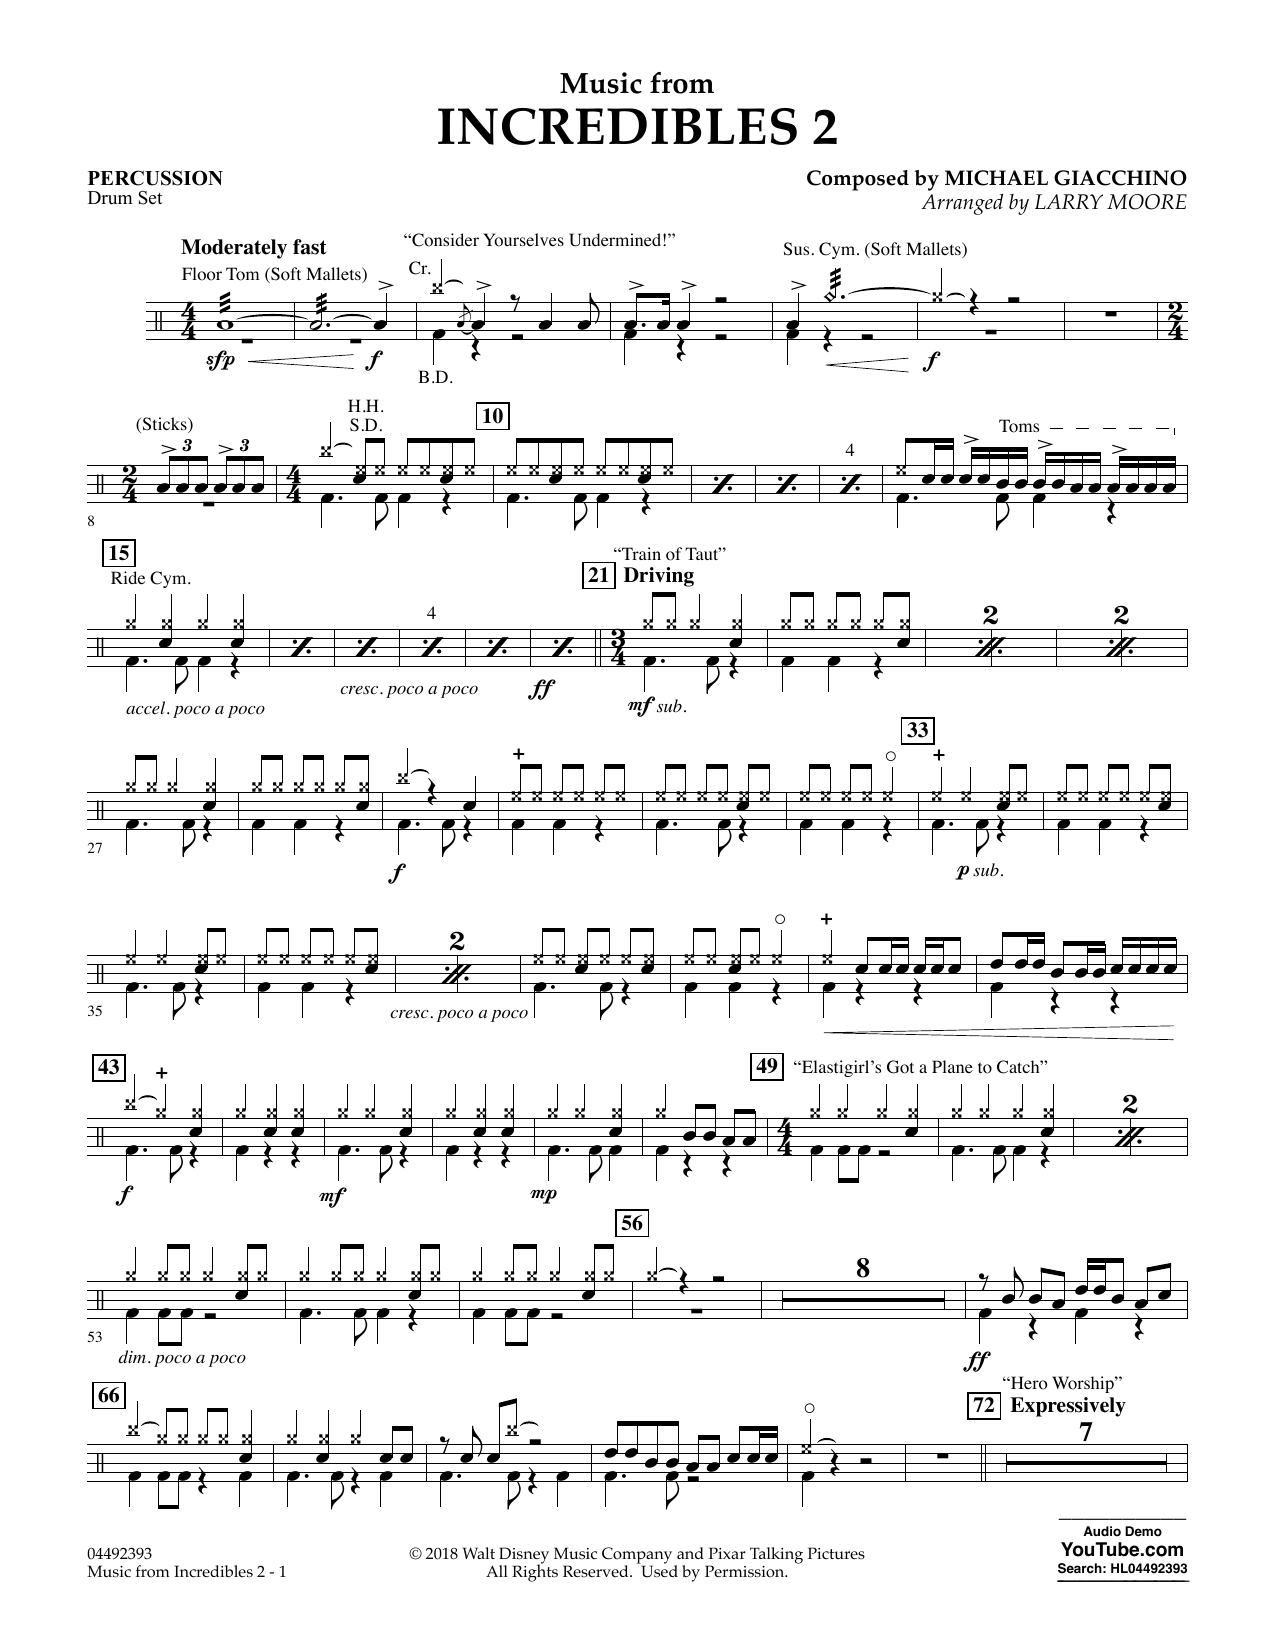 Music from Incredibles 2 (arr. Larry Moore) - Percussion Sheet Music